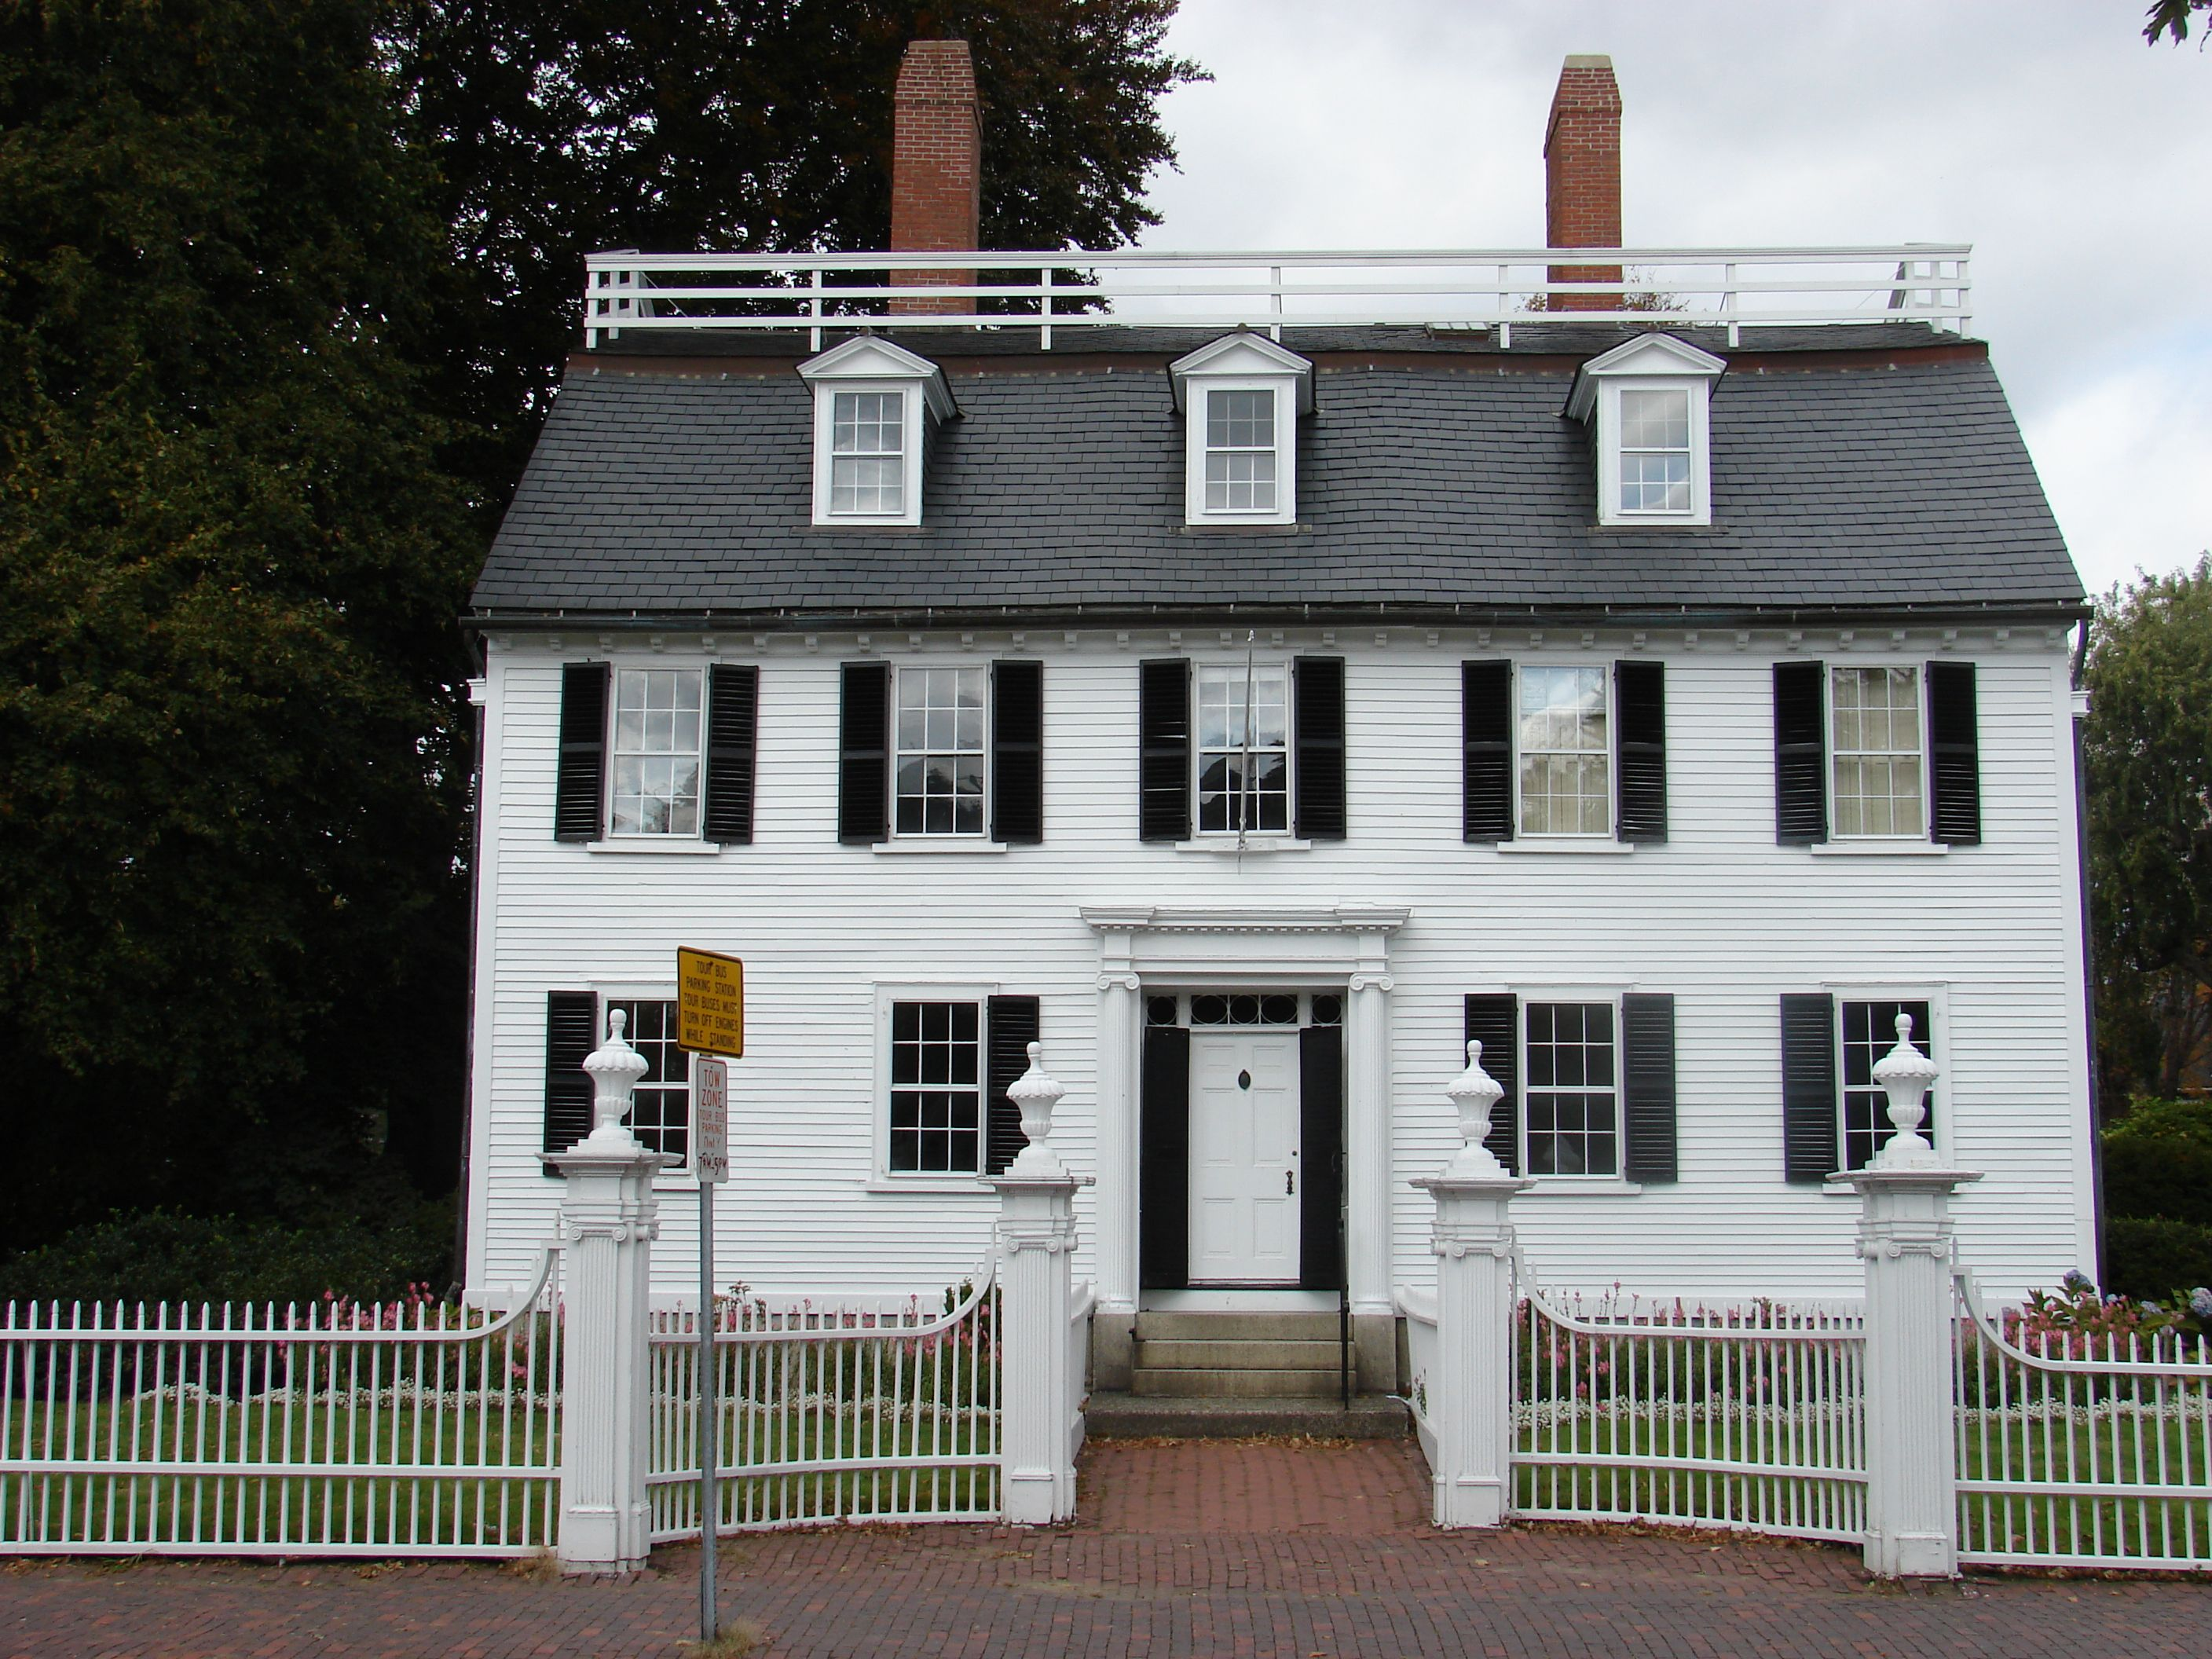 Hocus pocus house salem ma places i 39 ve been and love for Salem house